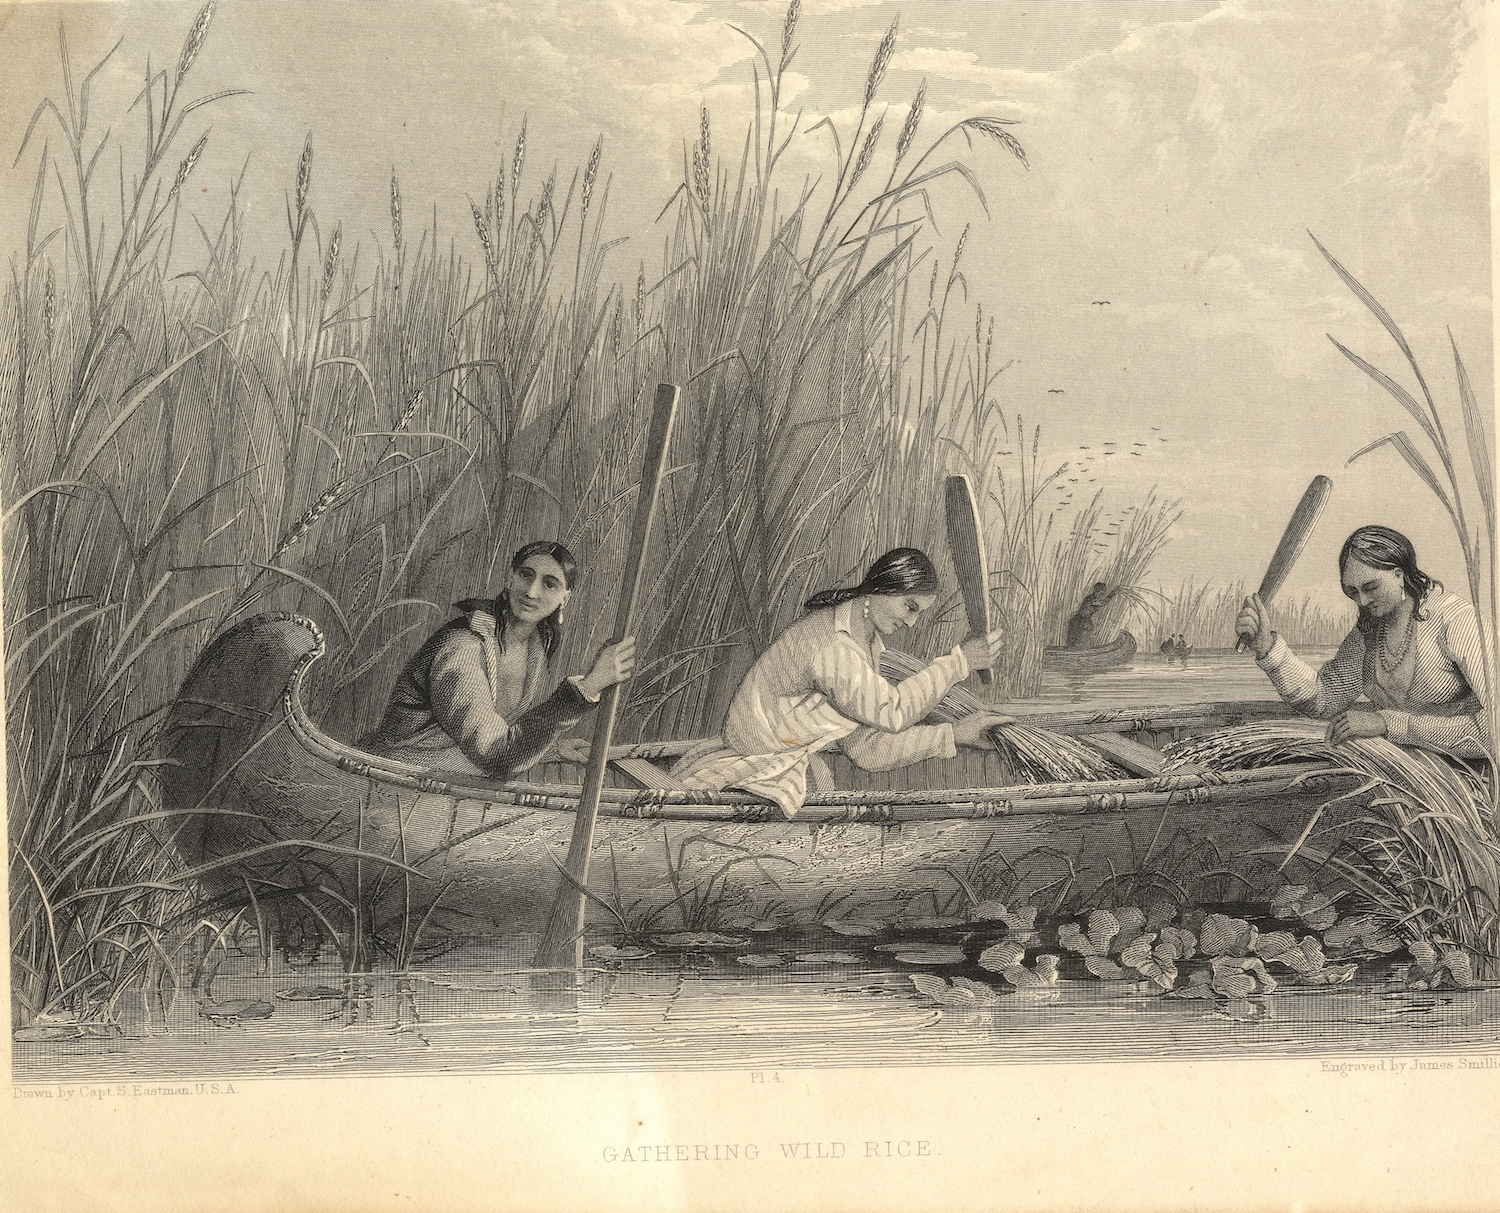 <table class=&quot;lightbox&quot;><tr><td colspan=2 class=&quot;lightbox-title&quot;>Gathering Wild Rice</td></tr><tr><td colspan=2 class=&quot;lightbox-caption&quot;>This illustration depicts three Native American women knocking wild rice grains into their canoe with paddles.</td></tr><tr><td colspan=2 class=&quot;lightbox-spacer&quot;></td></tr><tr class=&quot;lightbox-detail&quot;><td class=&quot;cell-title&quot;>Source: </td><td class=&quot;cell-value&quot;>From the Milwaukee County Historical Society.<br /><a href=&quot;https://milwaukeehistory.net/research/photographic-collections/&quot; target=&quot;_blank&quot;>Milwaukee County Historical Society</a></td></tr><tr class=&quot;filler-row&quot;><td colspan=2>&nbsp;</td></tr></table>